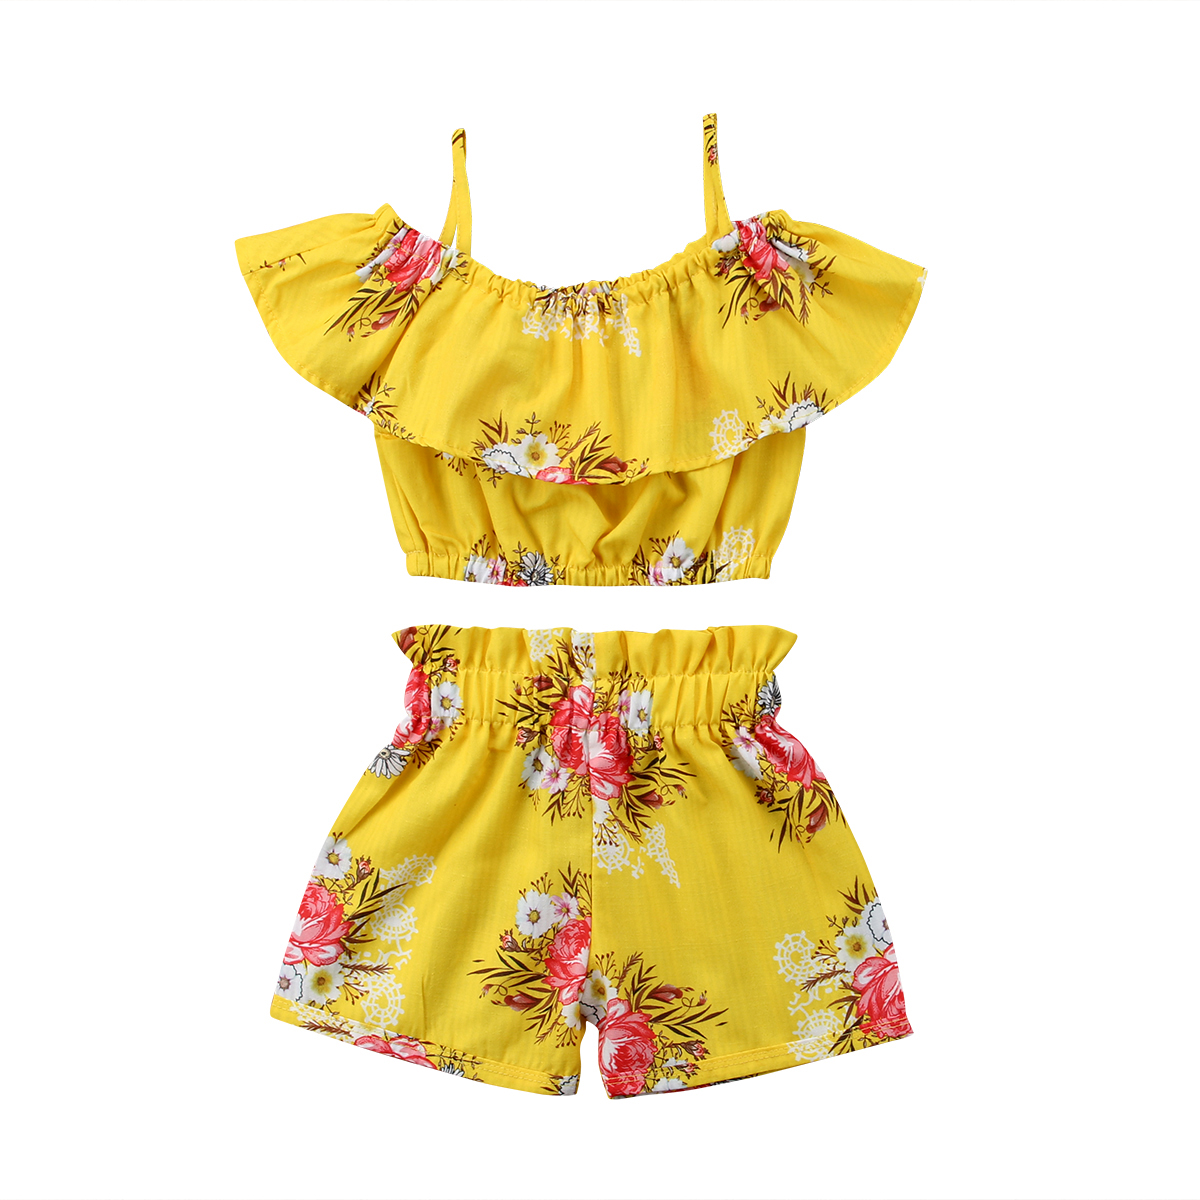 2pcs Toddler Kids Baby Girl Clothes Set Fashion Floral Yellow Ruffle Strap Crop Top + Shorts Pants Little Girls Summer Outfits fashion 2pcs baby girl lace floral tops check pants outfits brief new clothes toddler girls kids clothes summer cute set infant